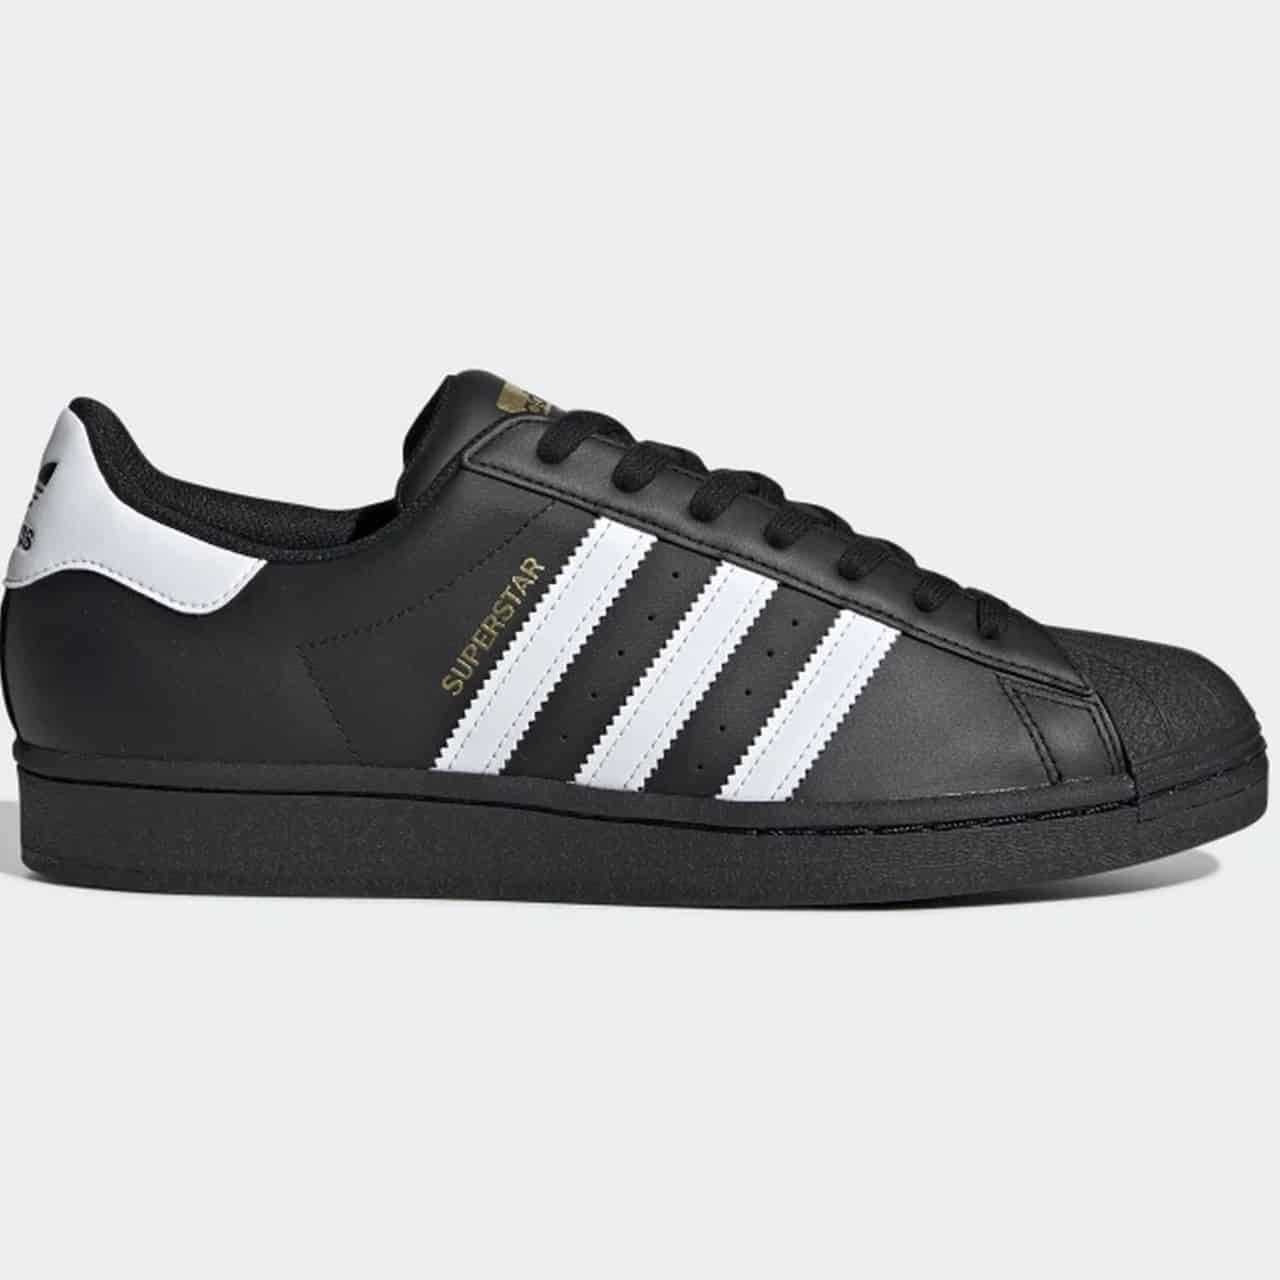 ADIDASI ADIDAS SUPERSTAR FOUNDATION - B27140 1